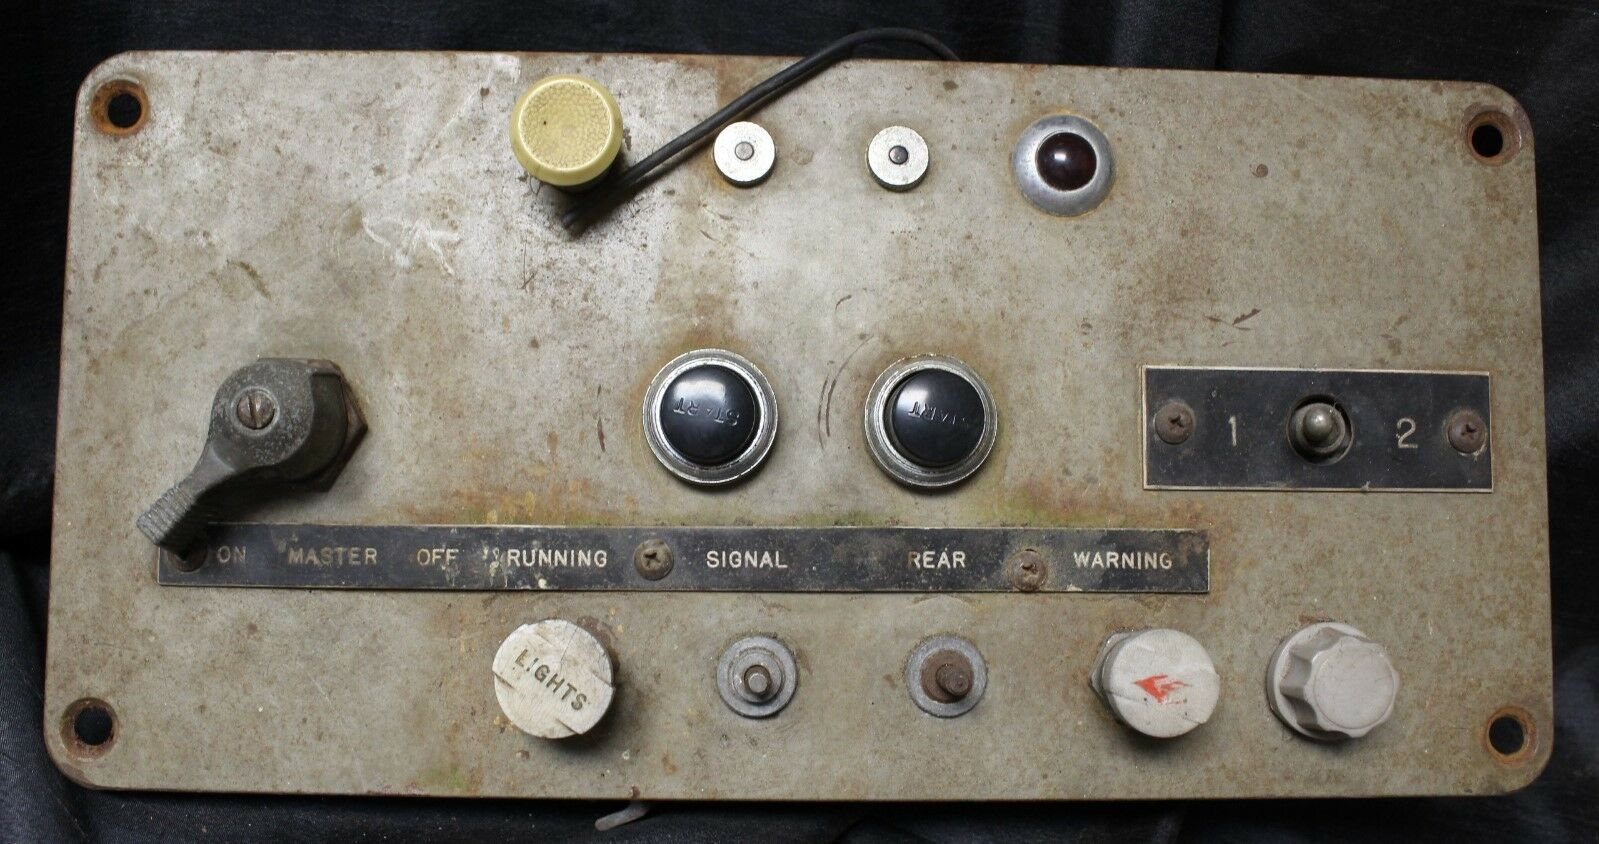 1964 Seagrave Firetruck Dual Master Switch Panel 1 & 2 Starter Signal Warning